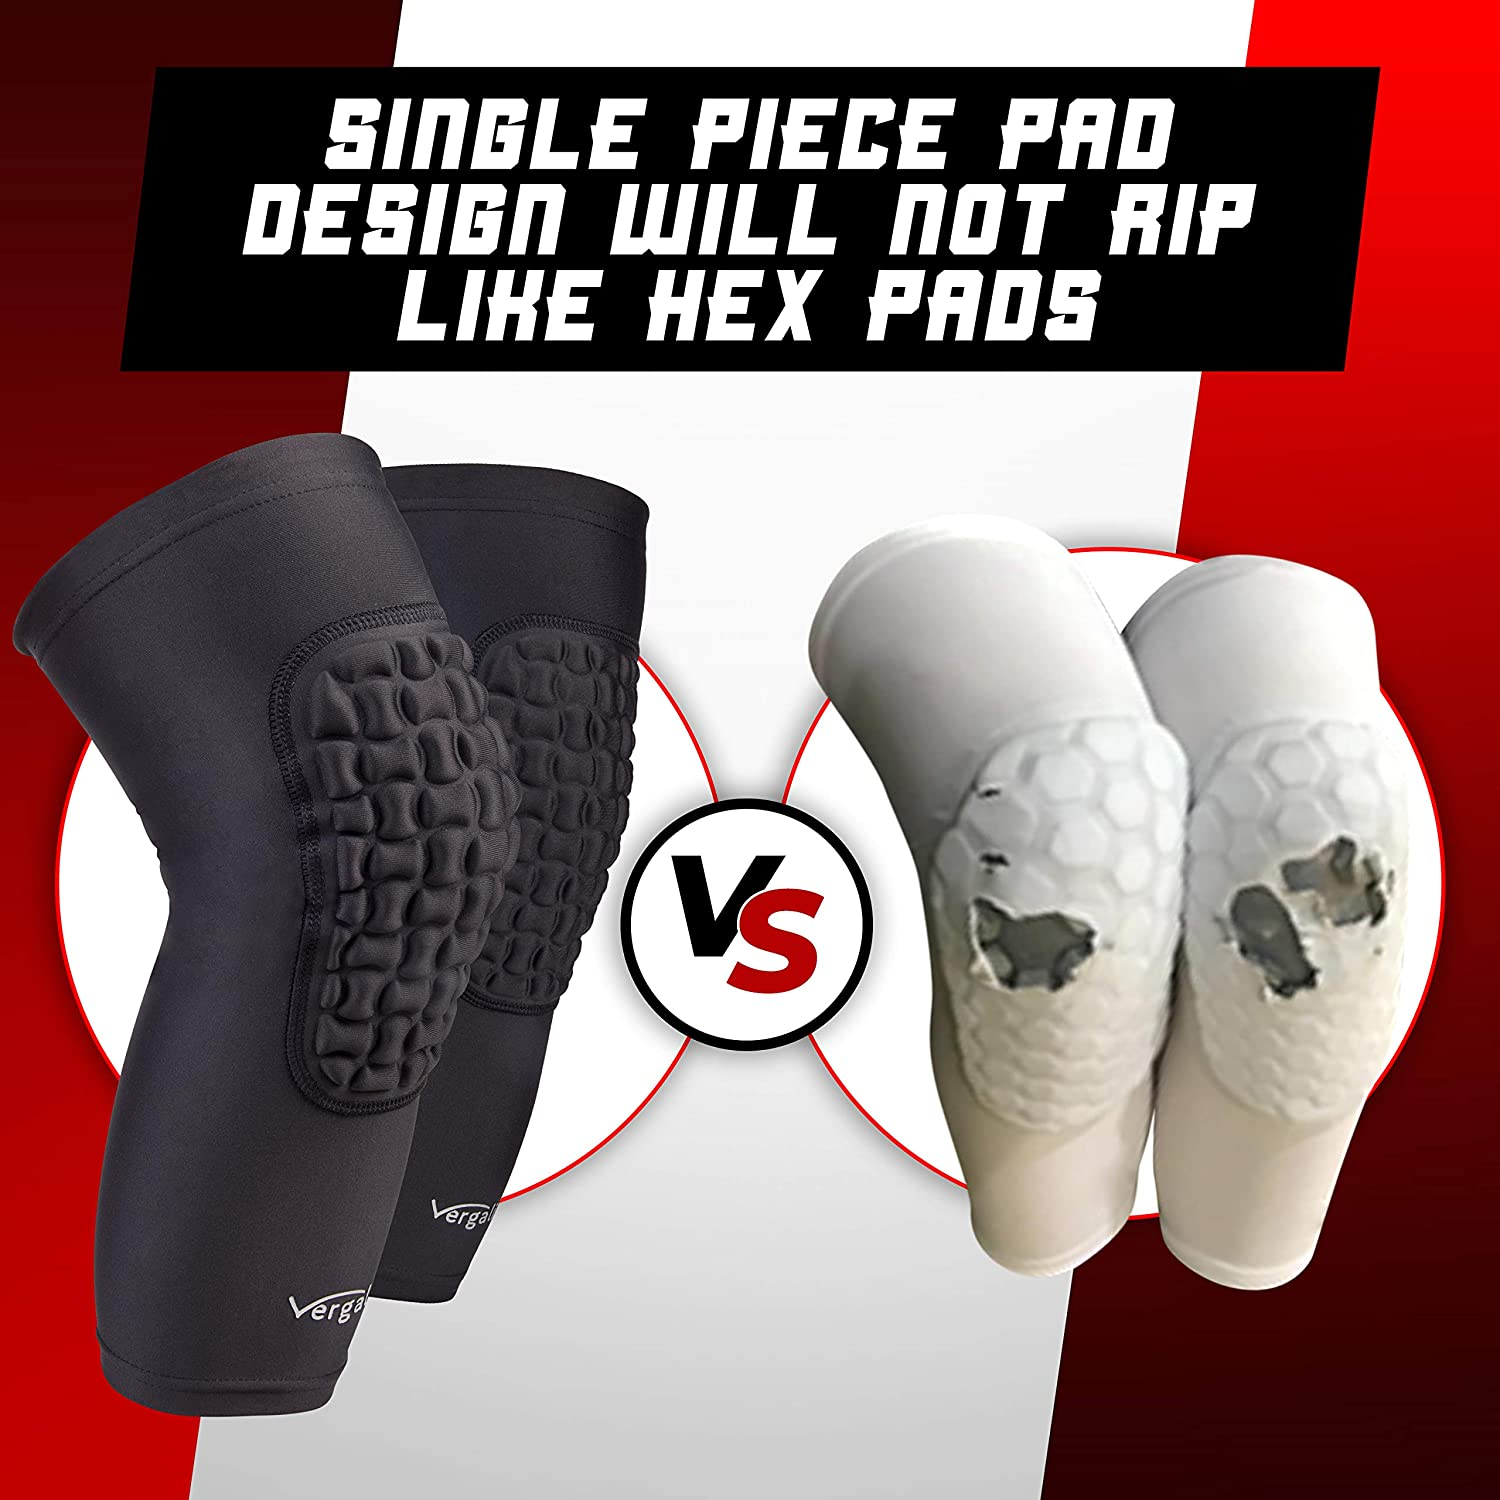 Vergali Basketball and Wrestling Knee Pads for Youth and Adult (Set of 2). Durable Padded Knee Sleeve Design Contours Around Knee to Protect Your Leg. Perfect Compression for Boys, Girls, Men, Women : Sports & Outdoors